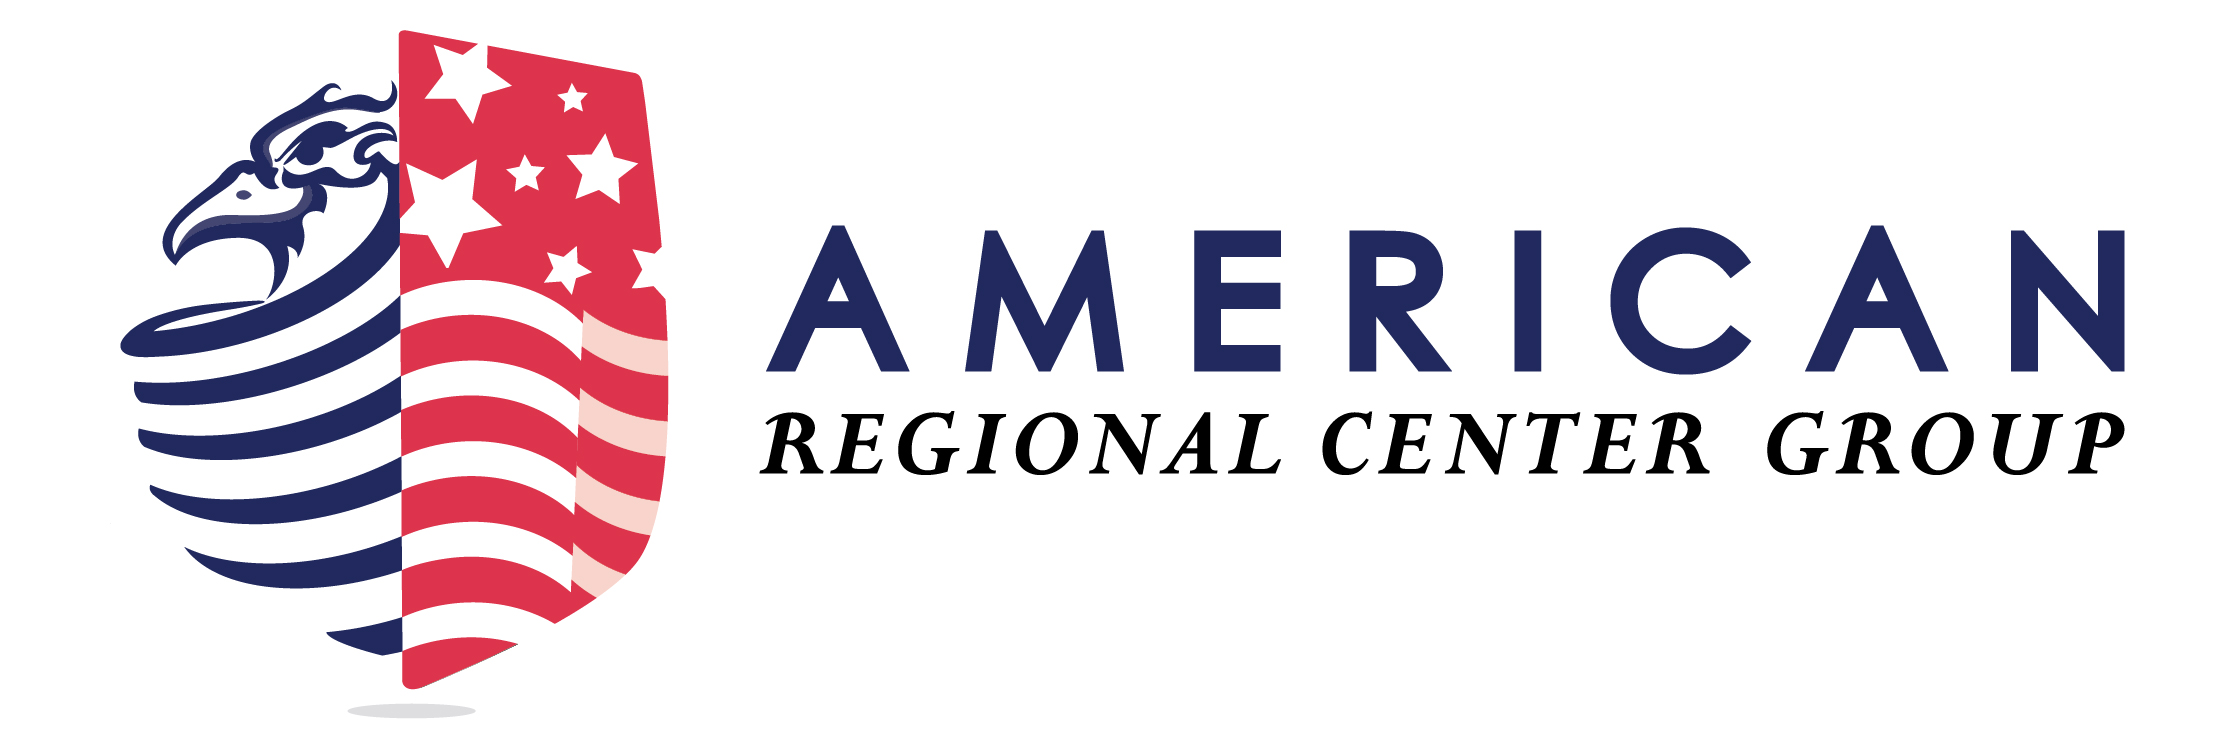 American Regional Center Group